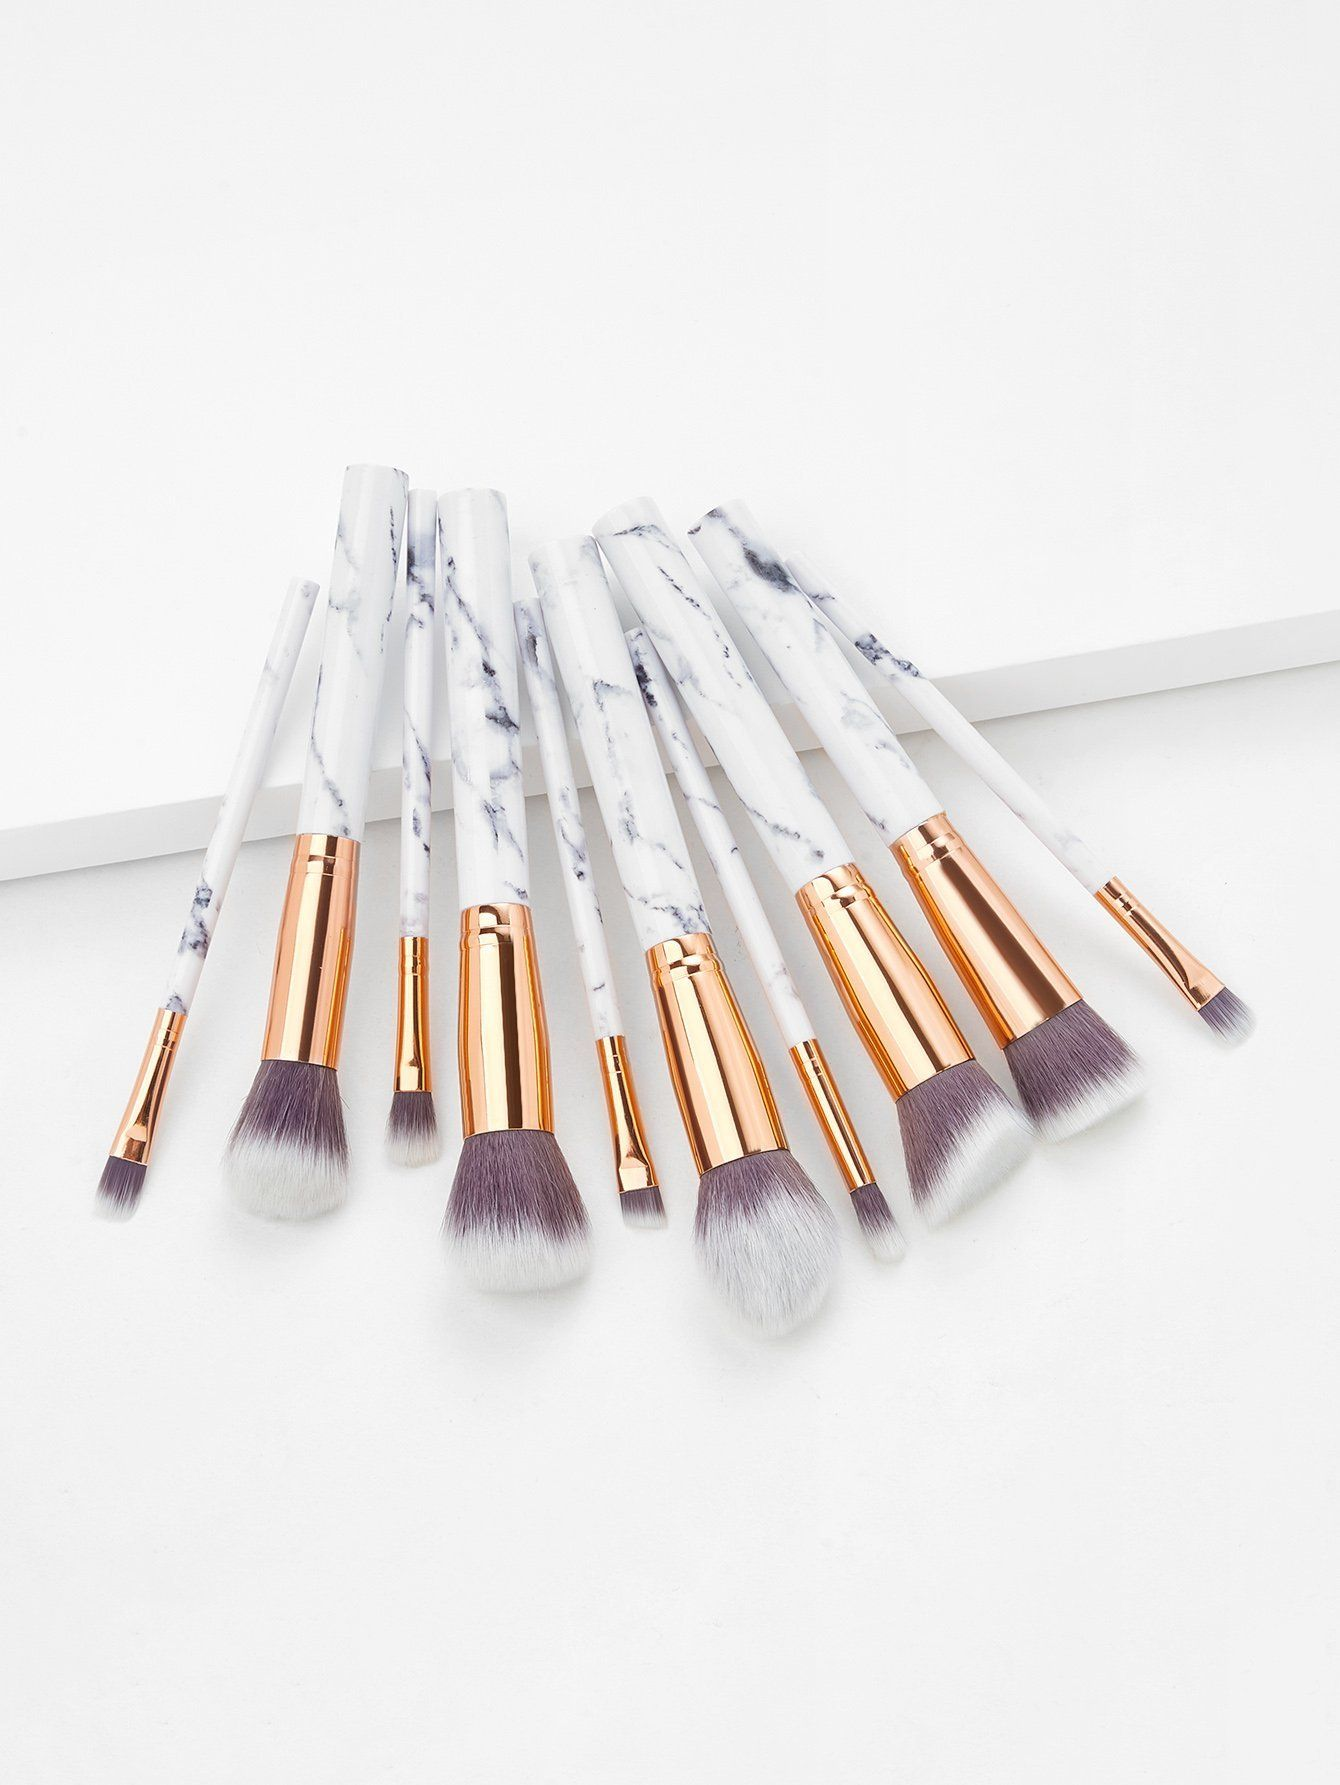 Marble Handle Makeup Brush 10pcs With Bag (With images